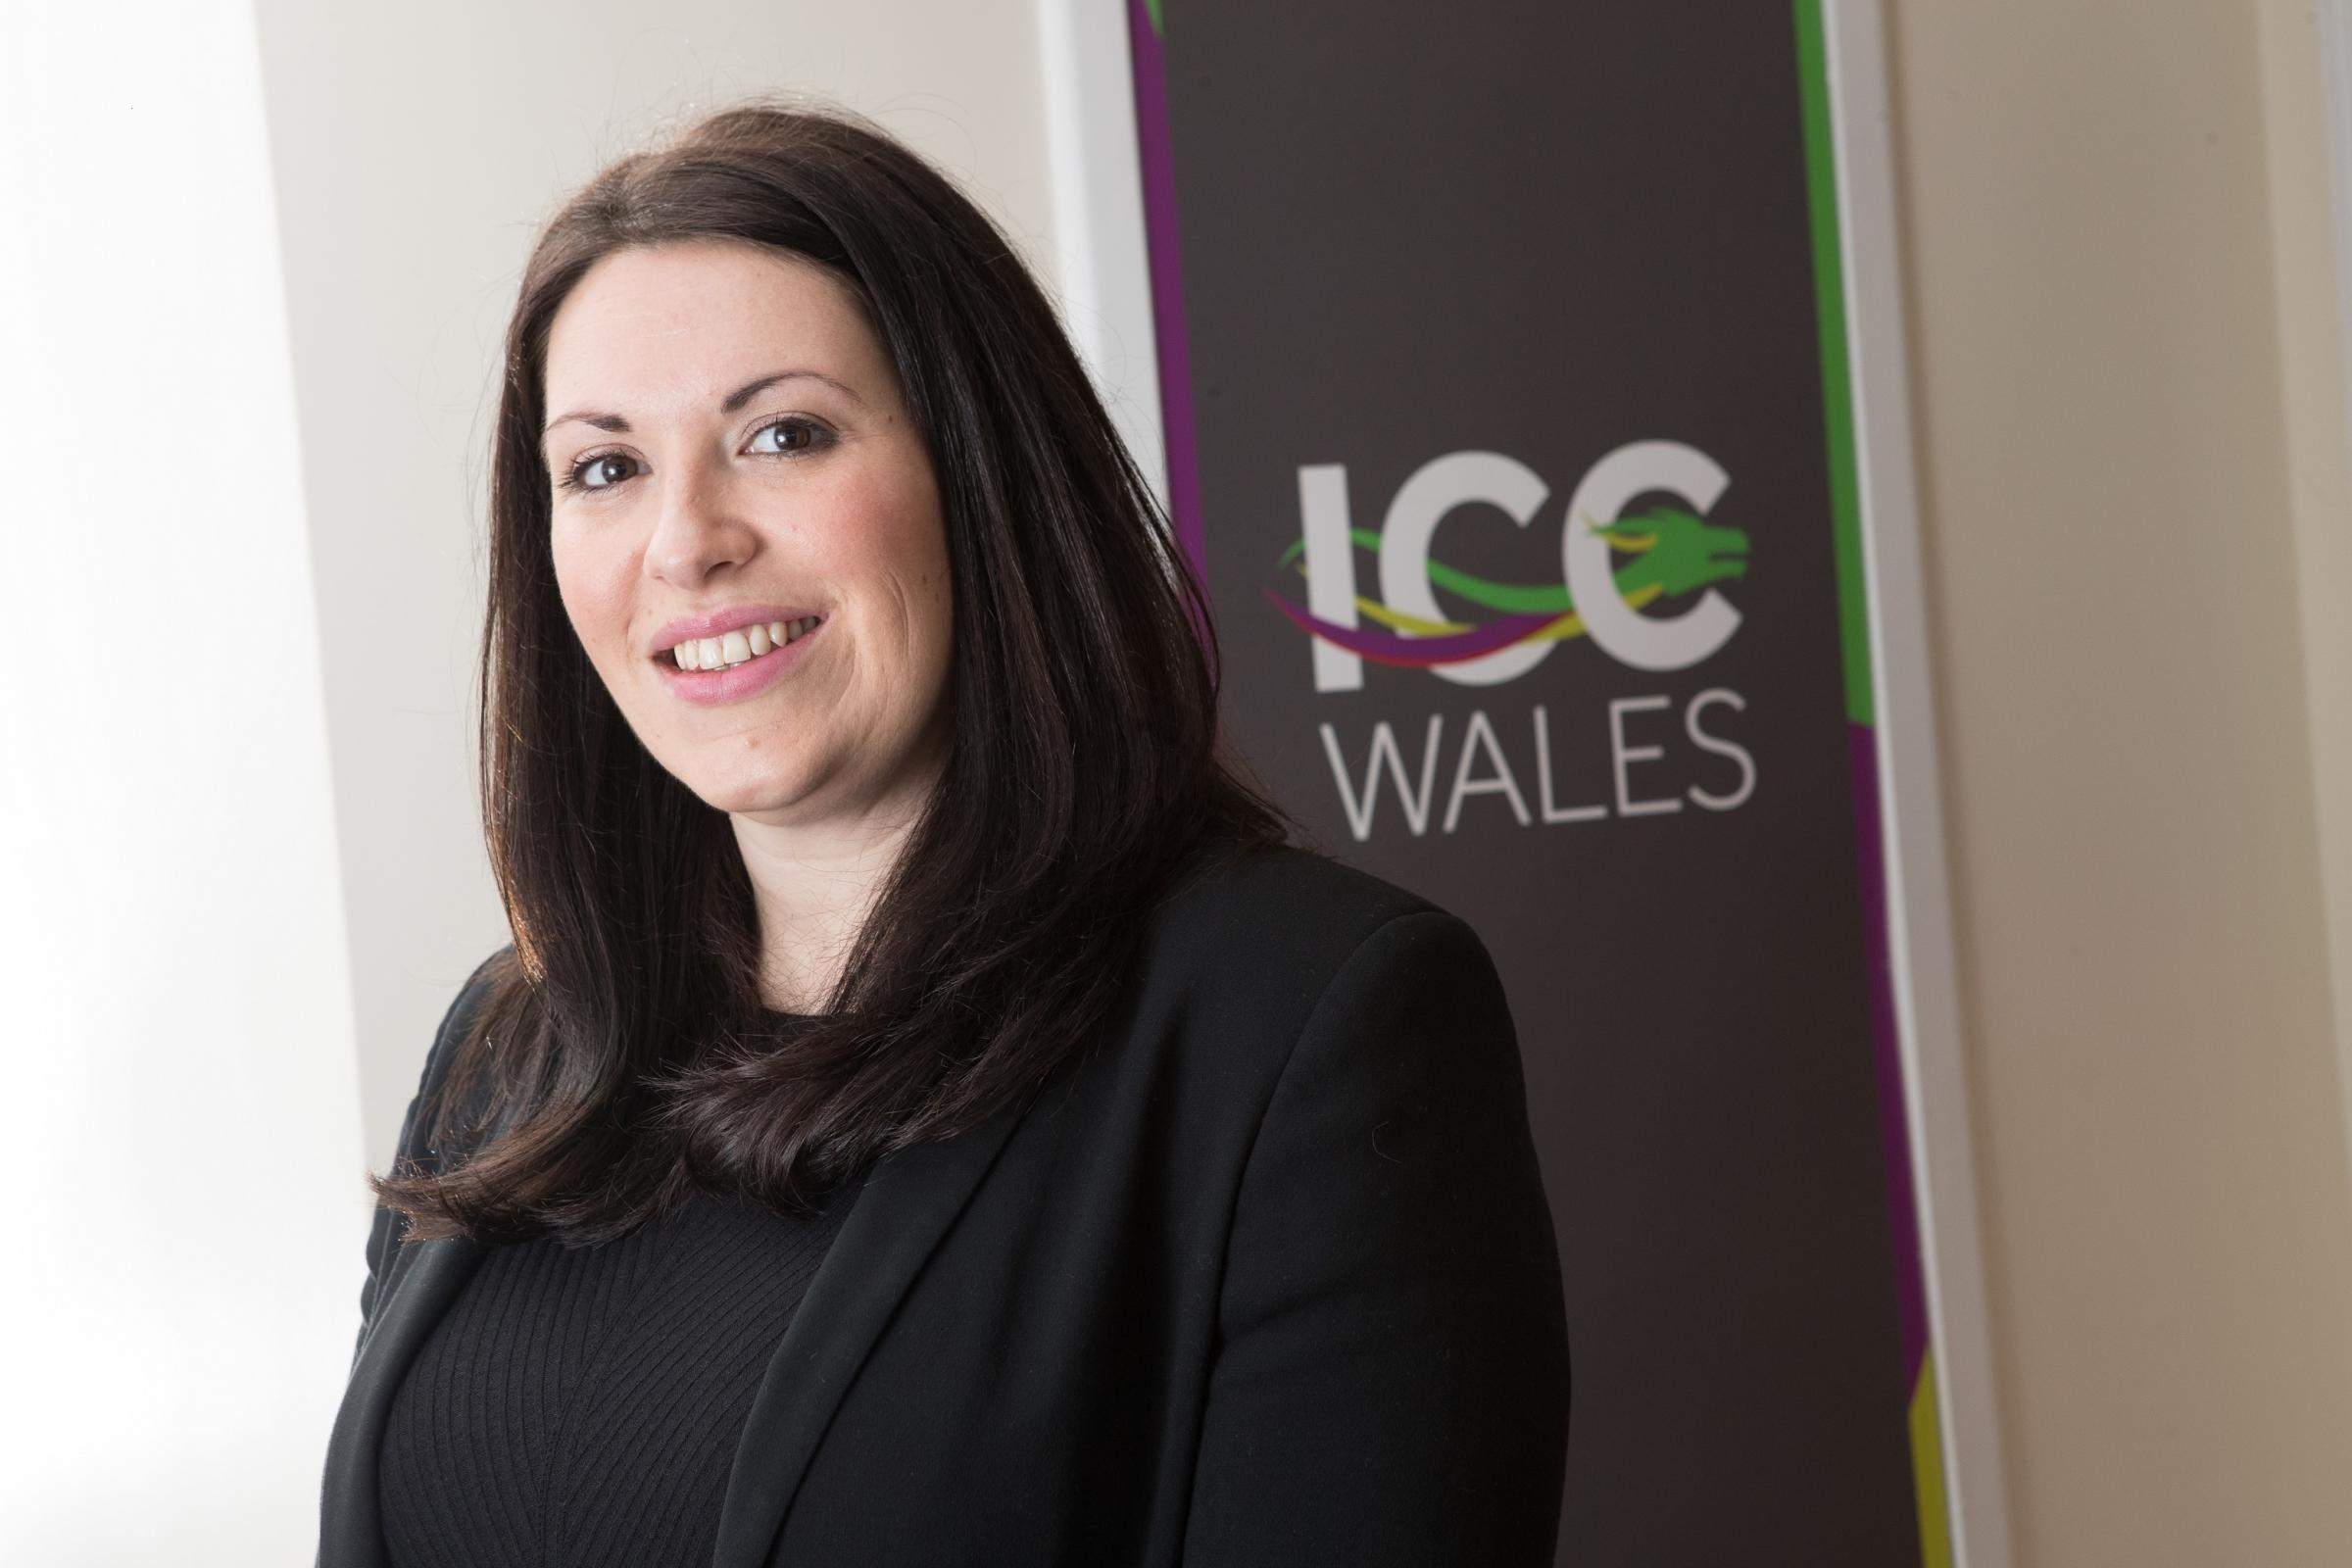 Rebecca Green, Corporate Sales Manager, ICC Wales